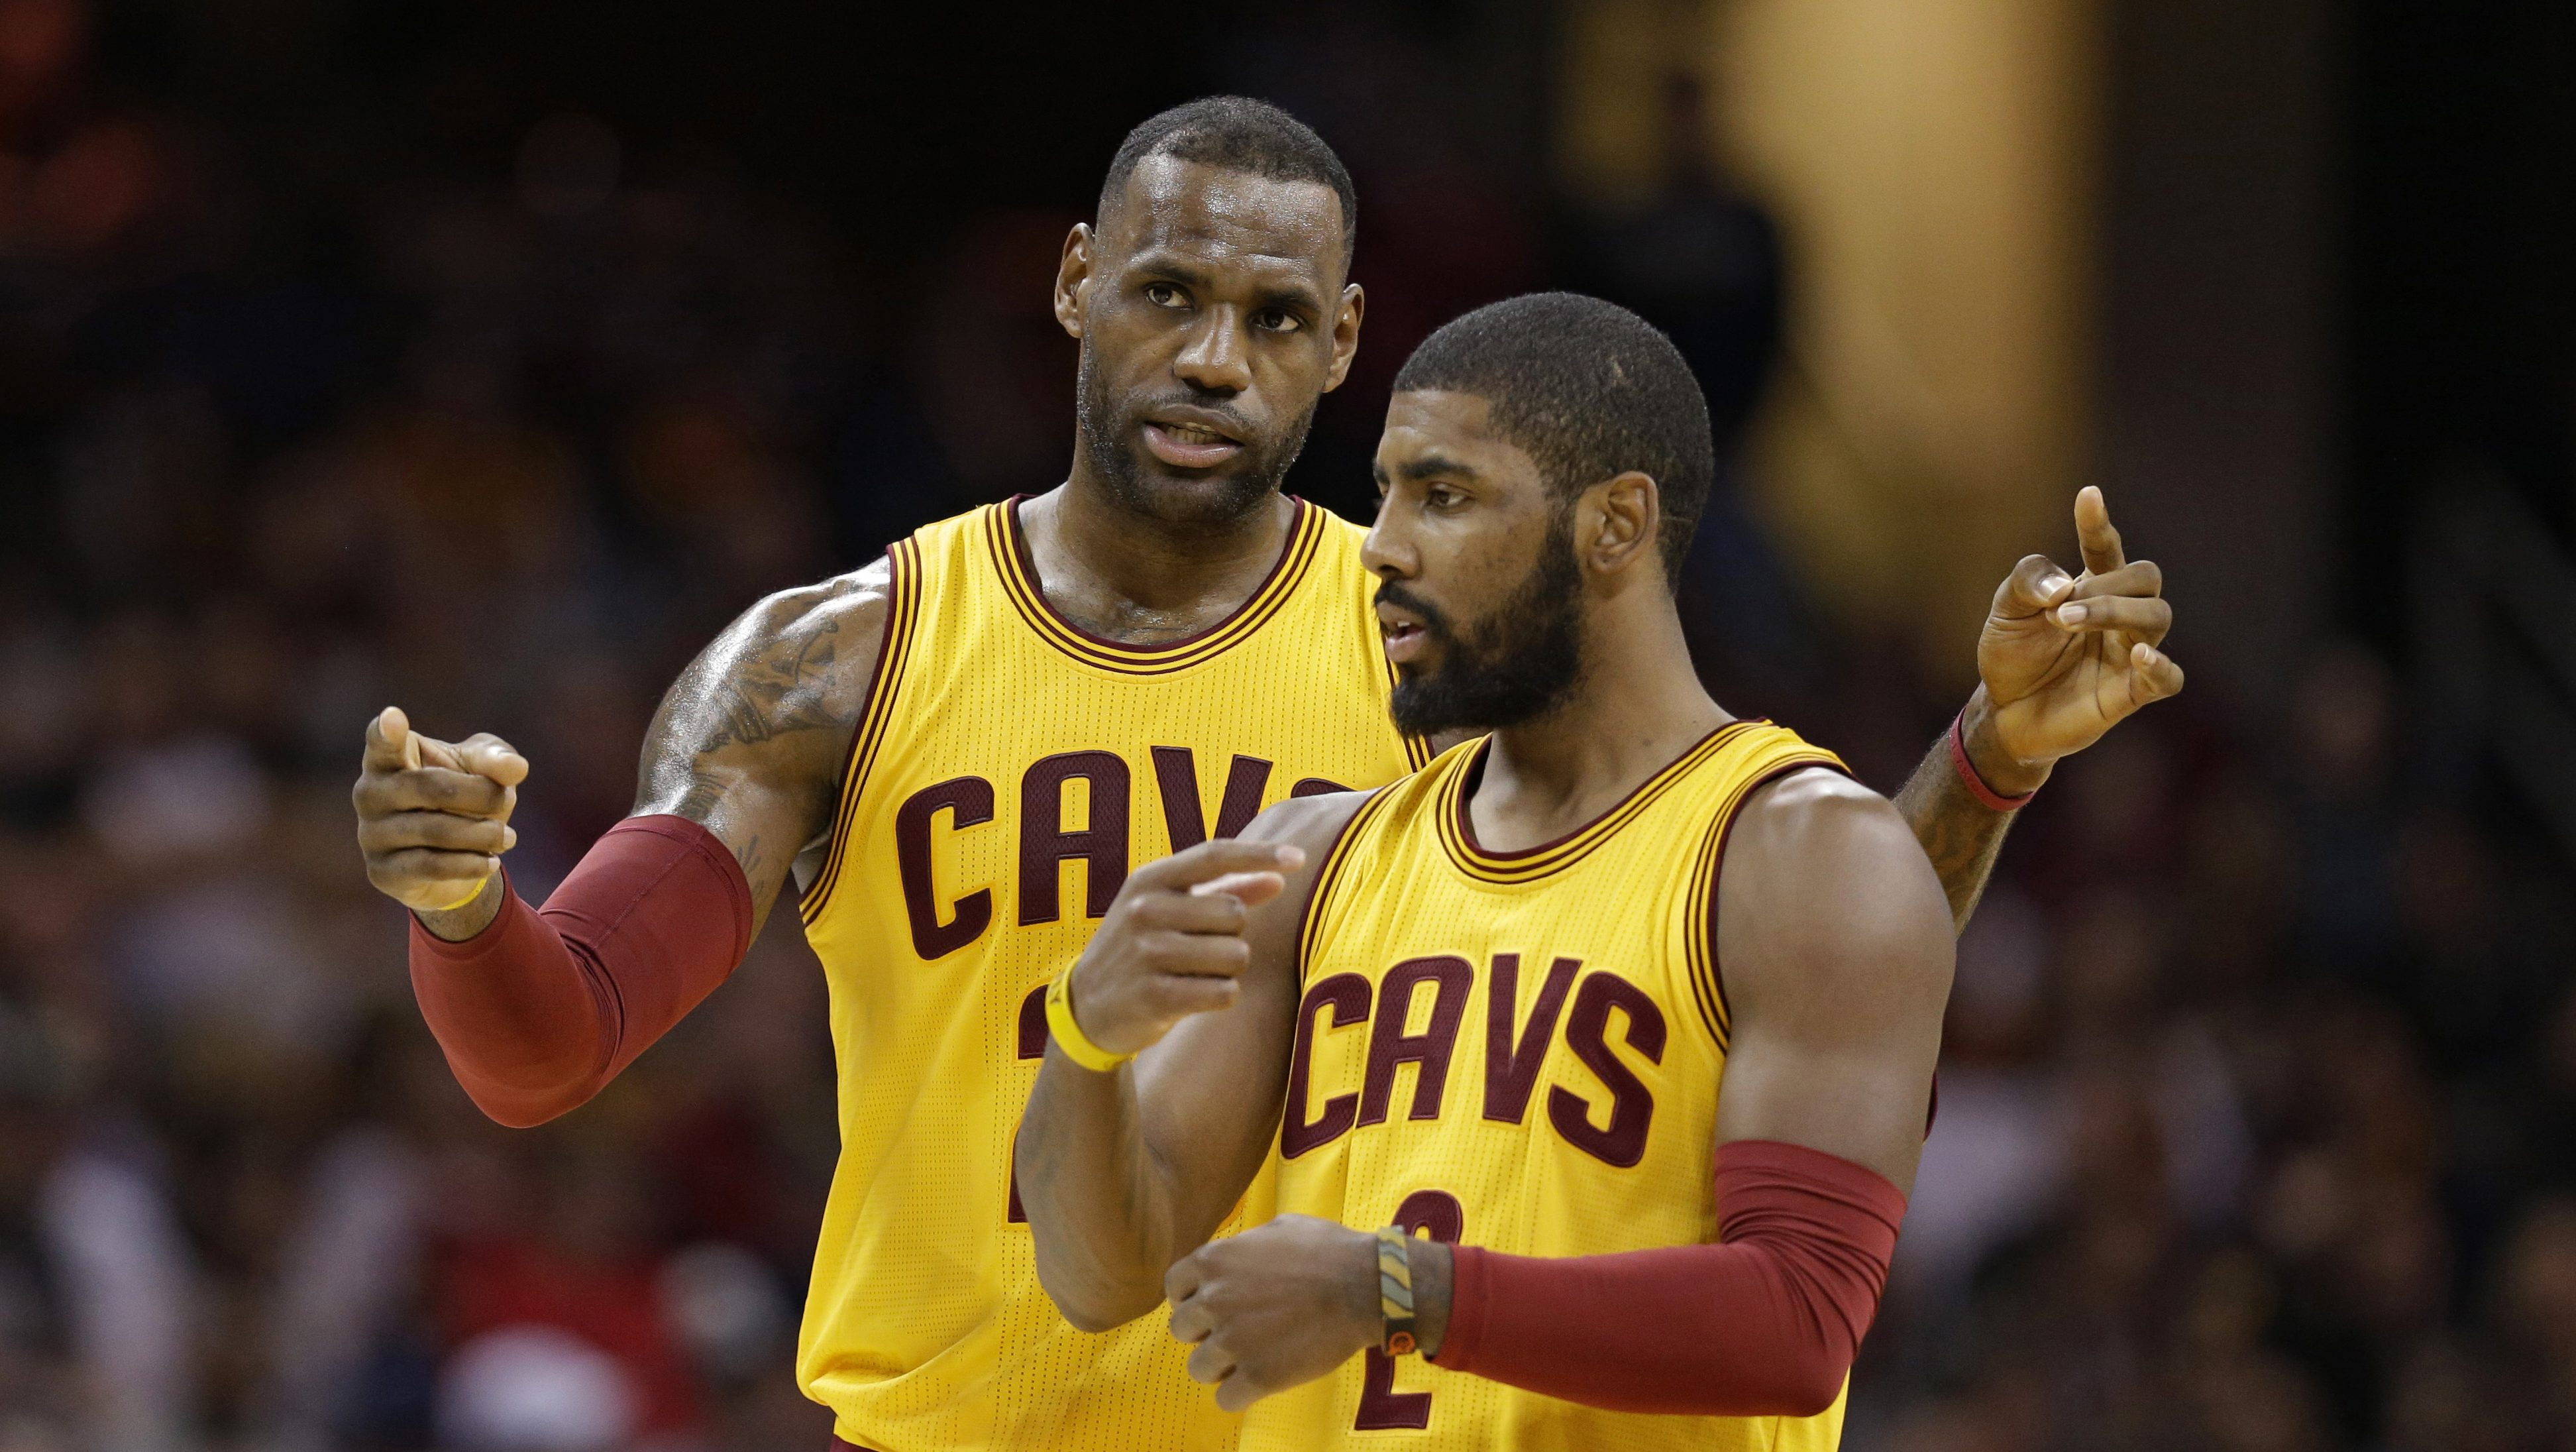 Kyrie Irving suffers from the Disease of Me